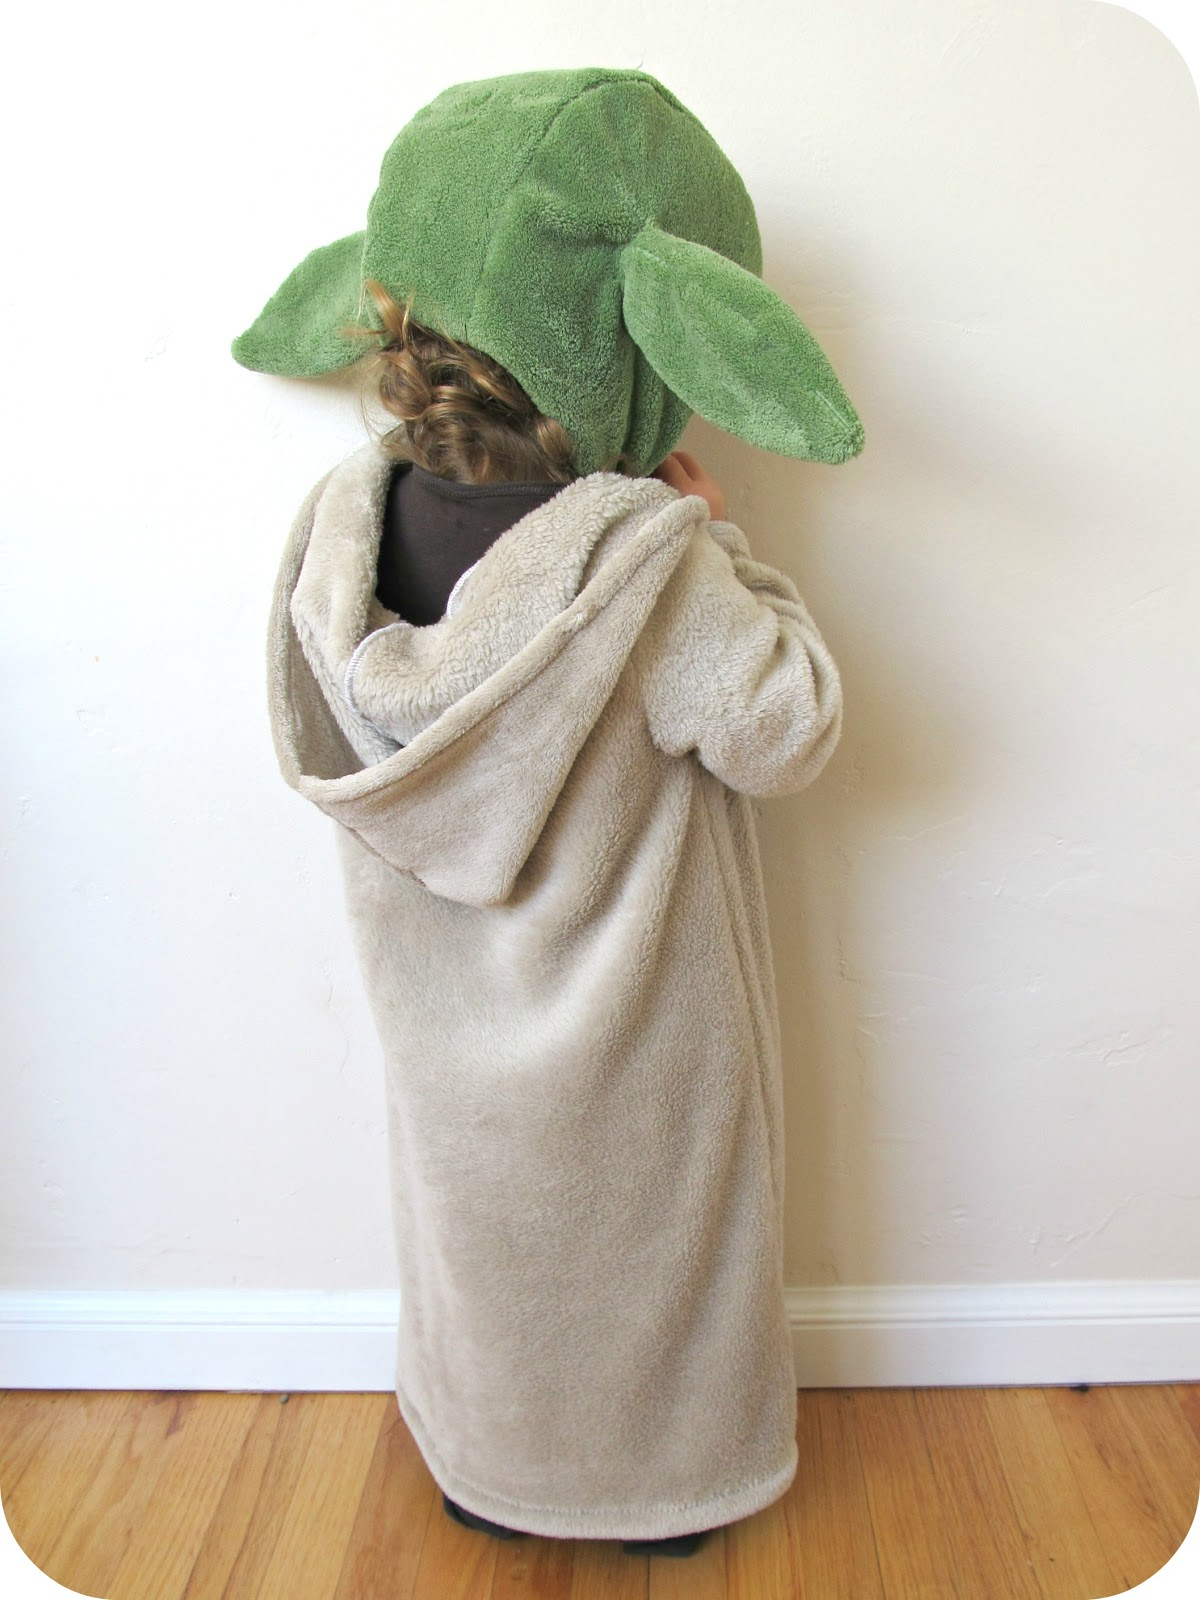 comfy dress up  yoda costume   Home made by jill 2013